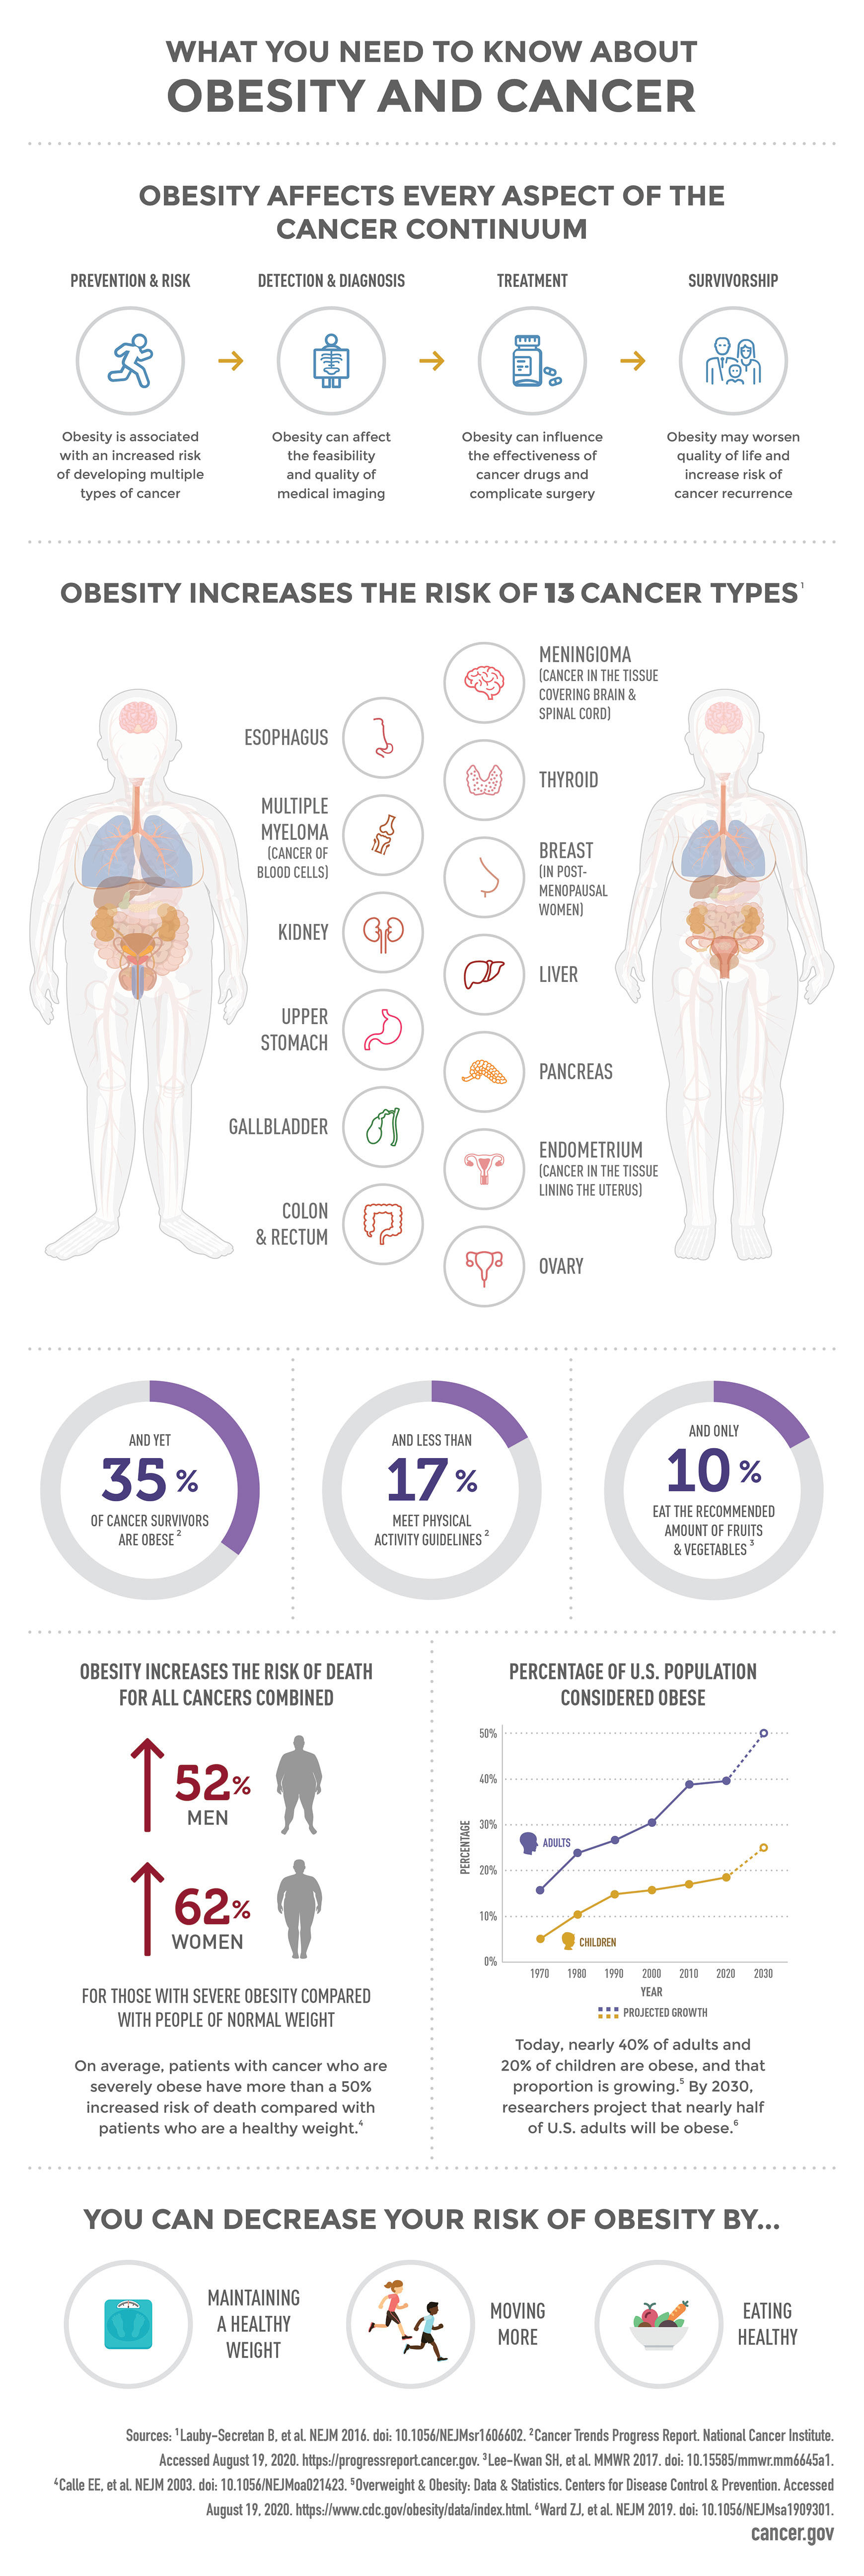 What You Need To Know About Obesity And Cancer National Cancer Institute